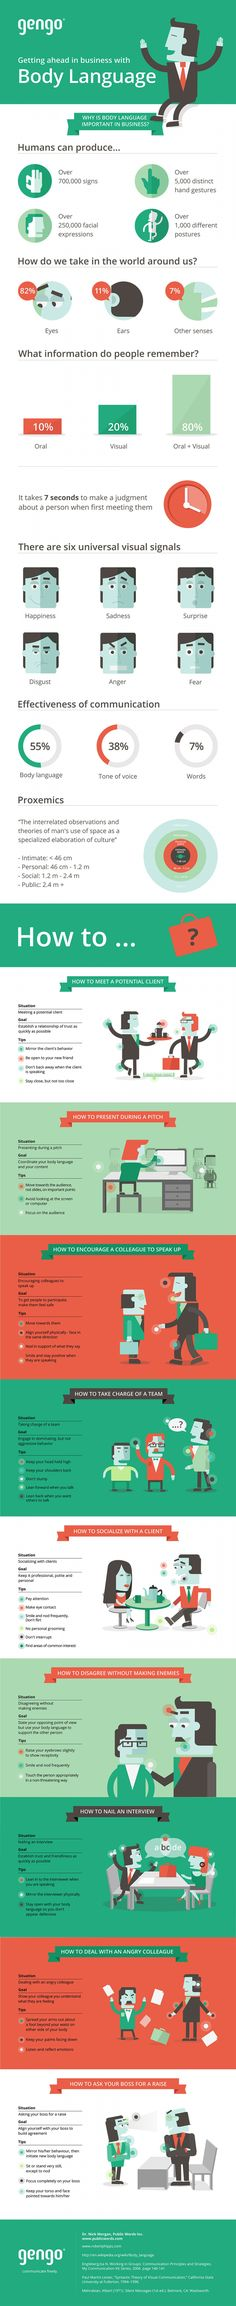 The Basics of Business Body Language (Infographic) | Inc.com